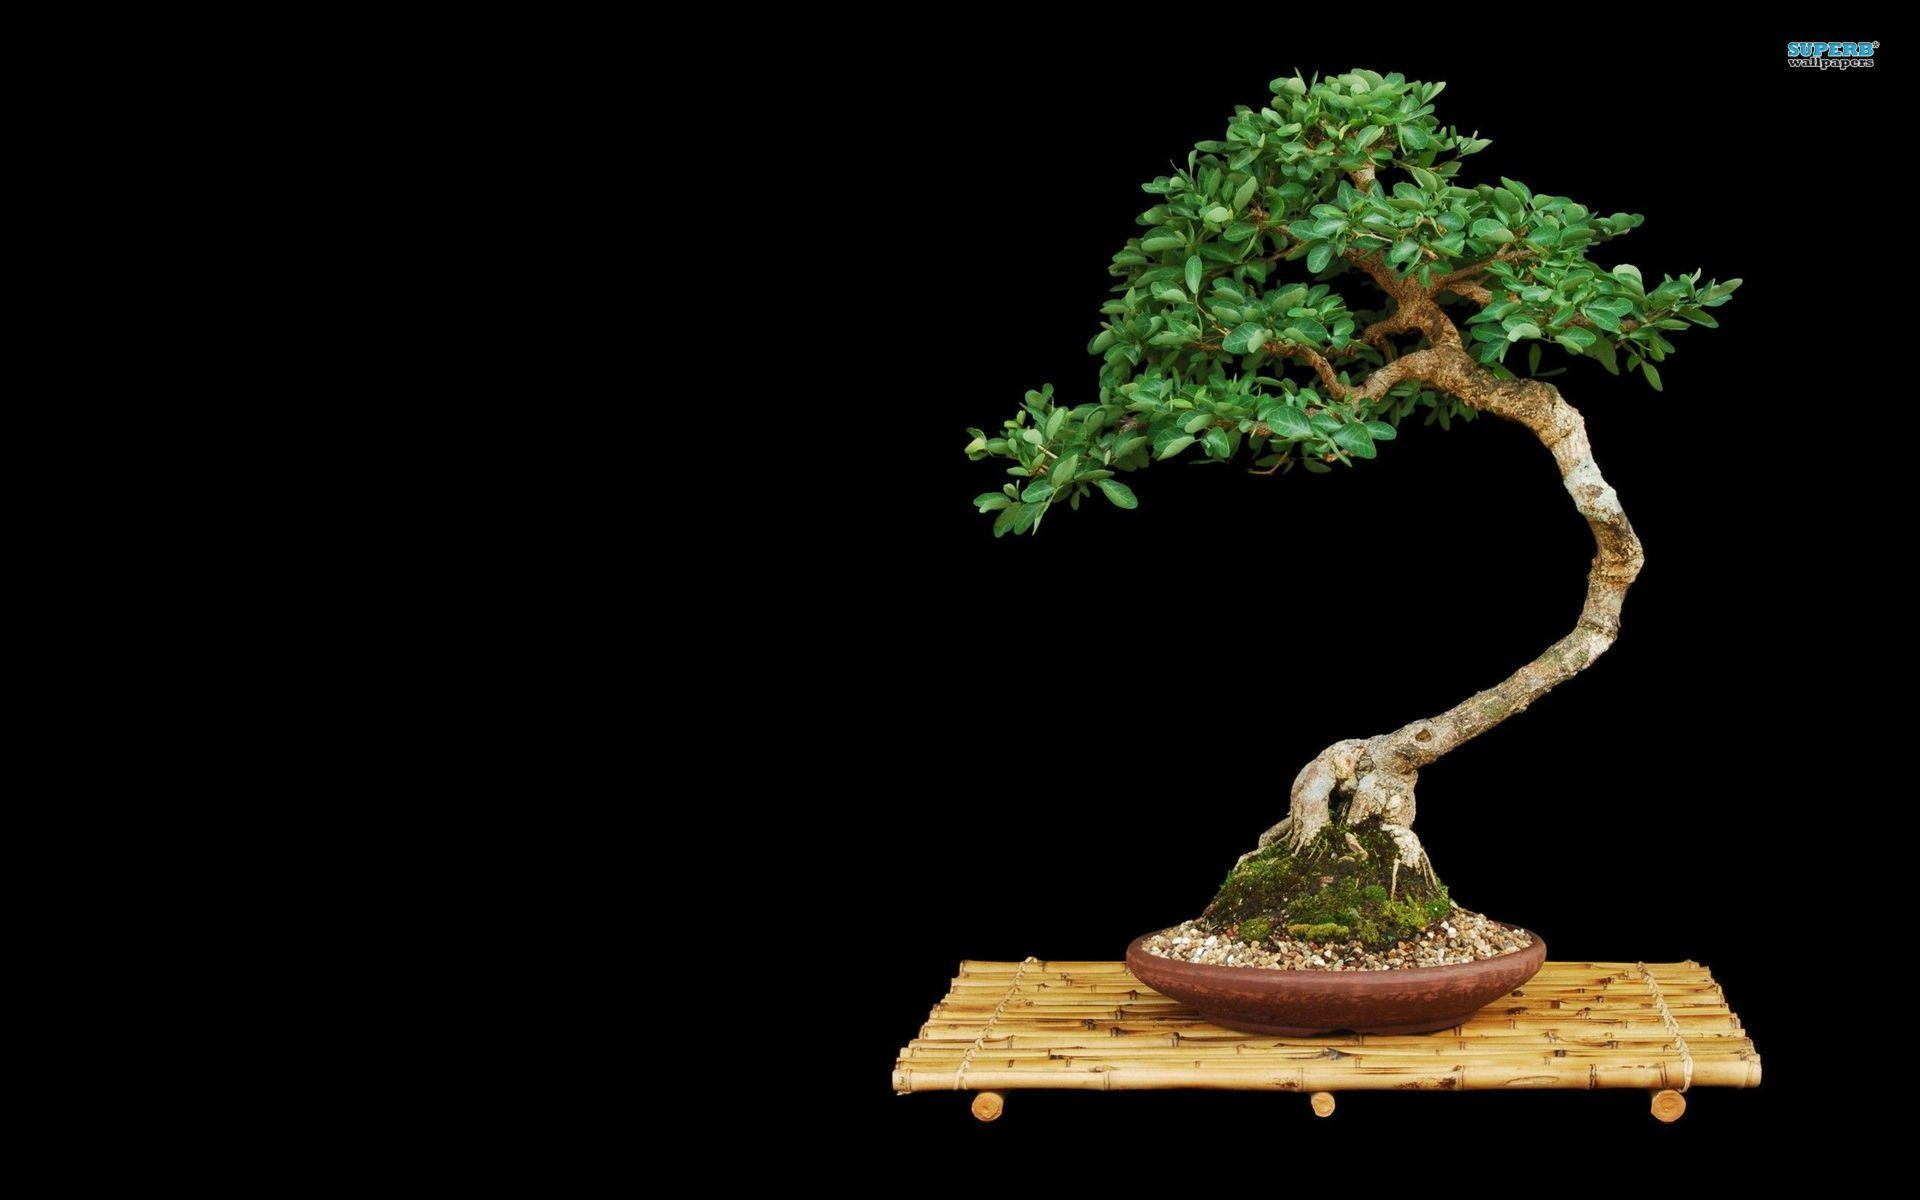 Bonsai wallpaper - Photography wallpapers - #